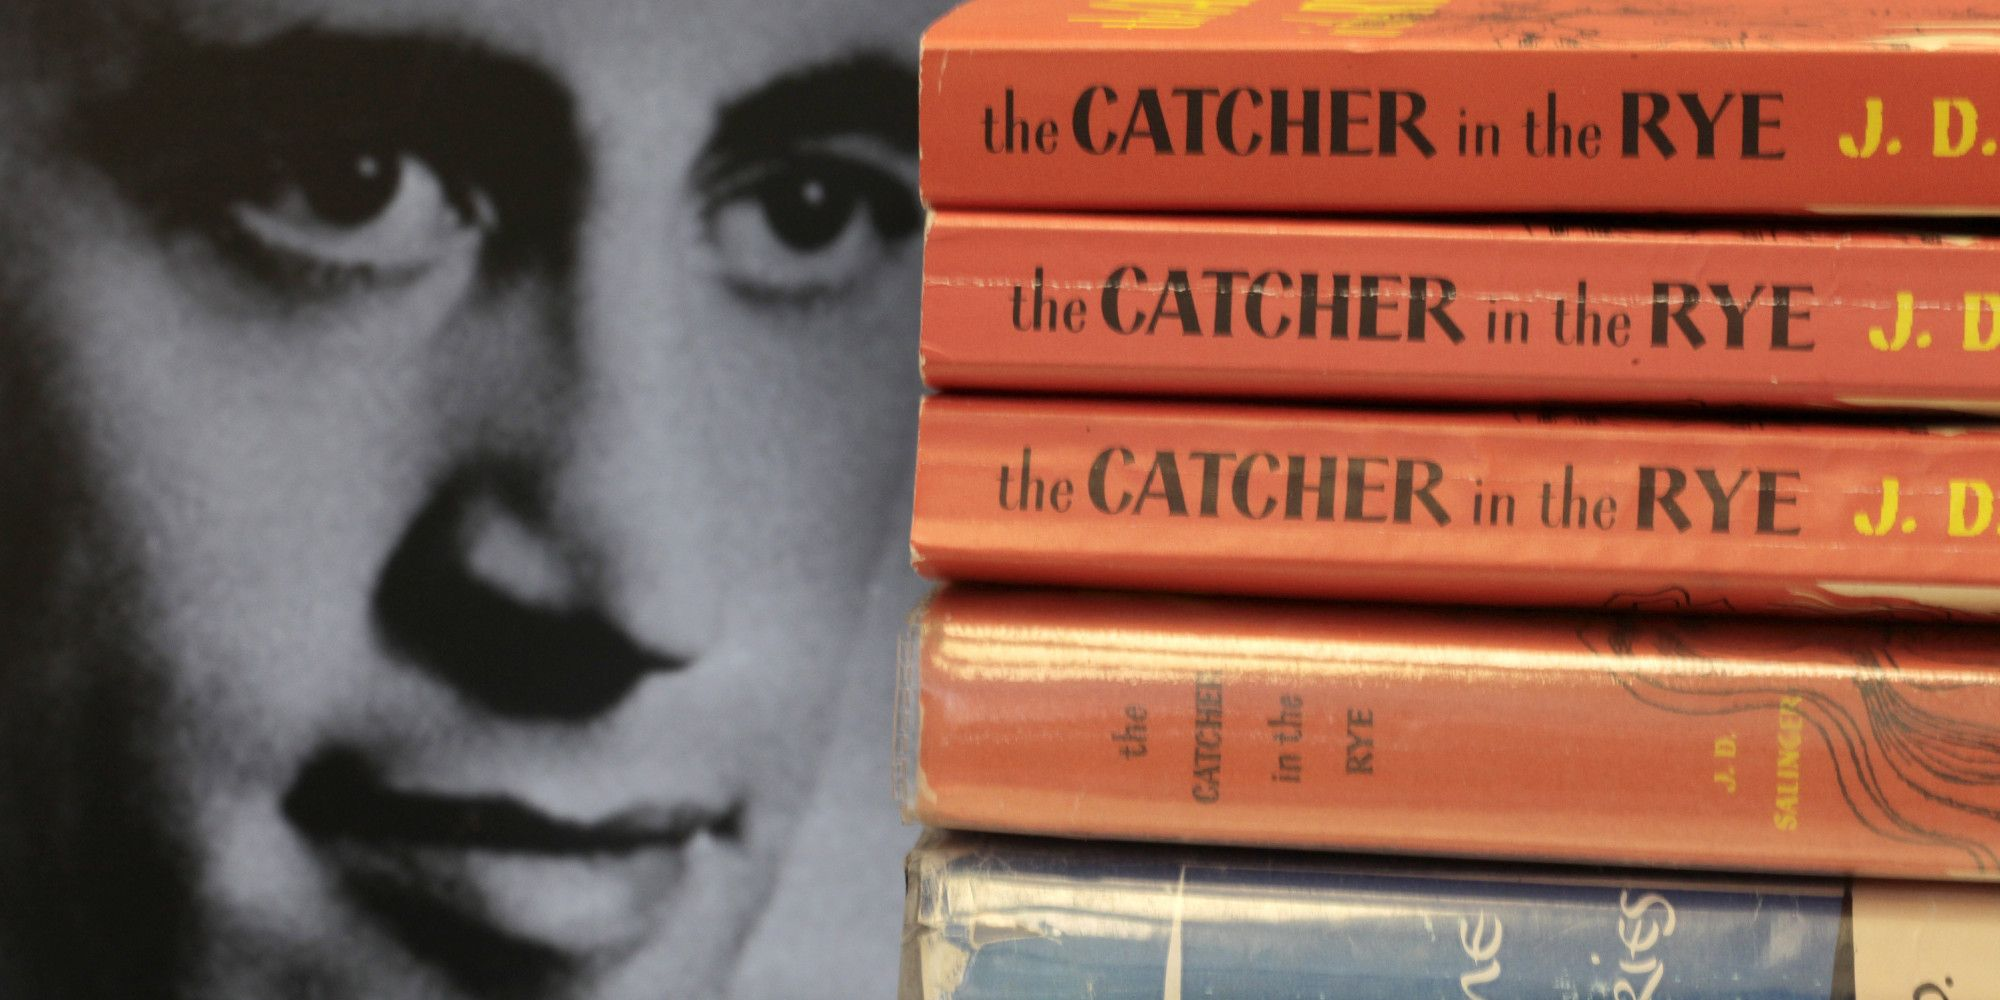 17 best images about catcher in the rye editor 17 best images about catcher in the rye editor holden caulfield and hunting hat